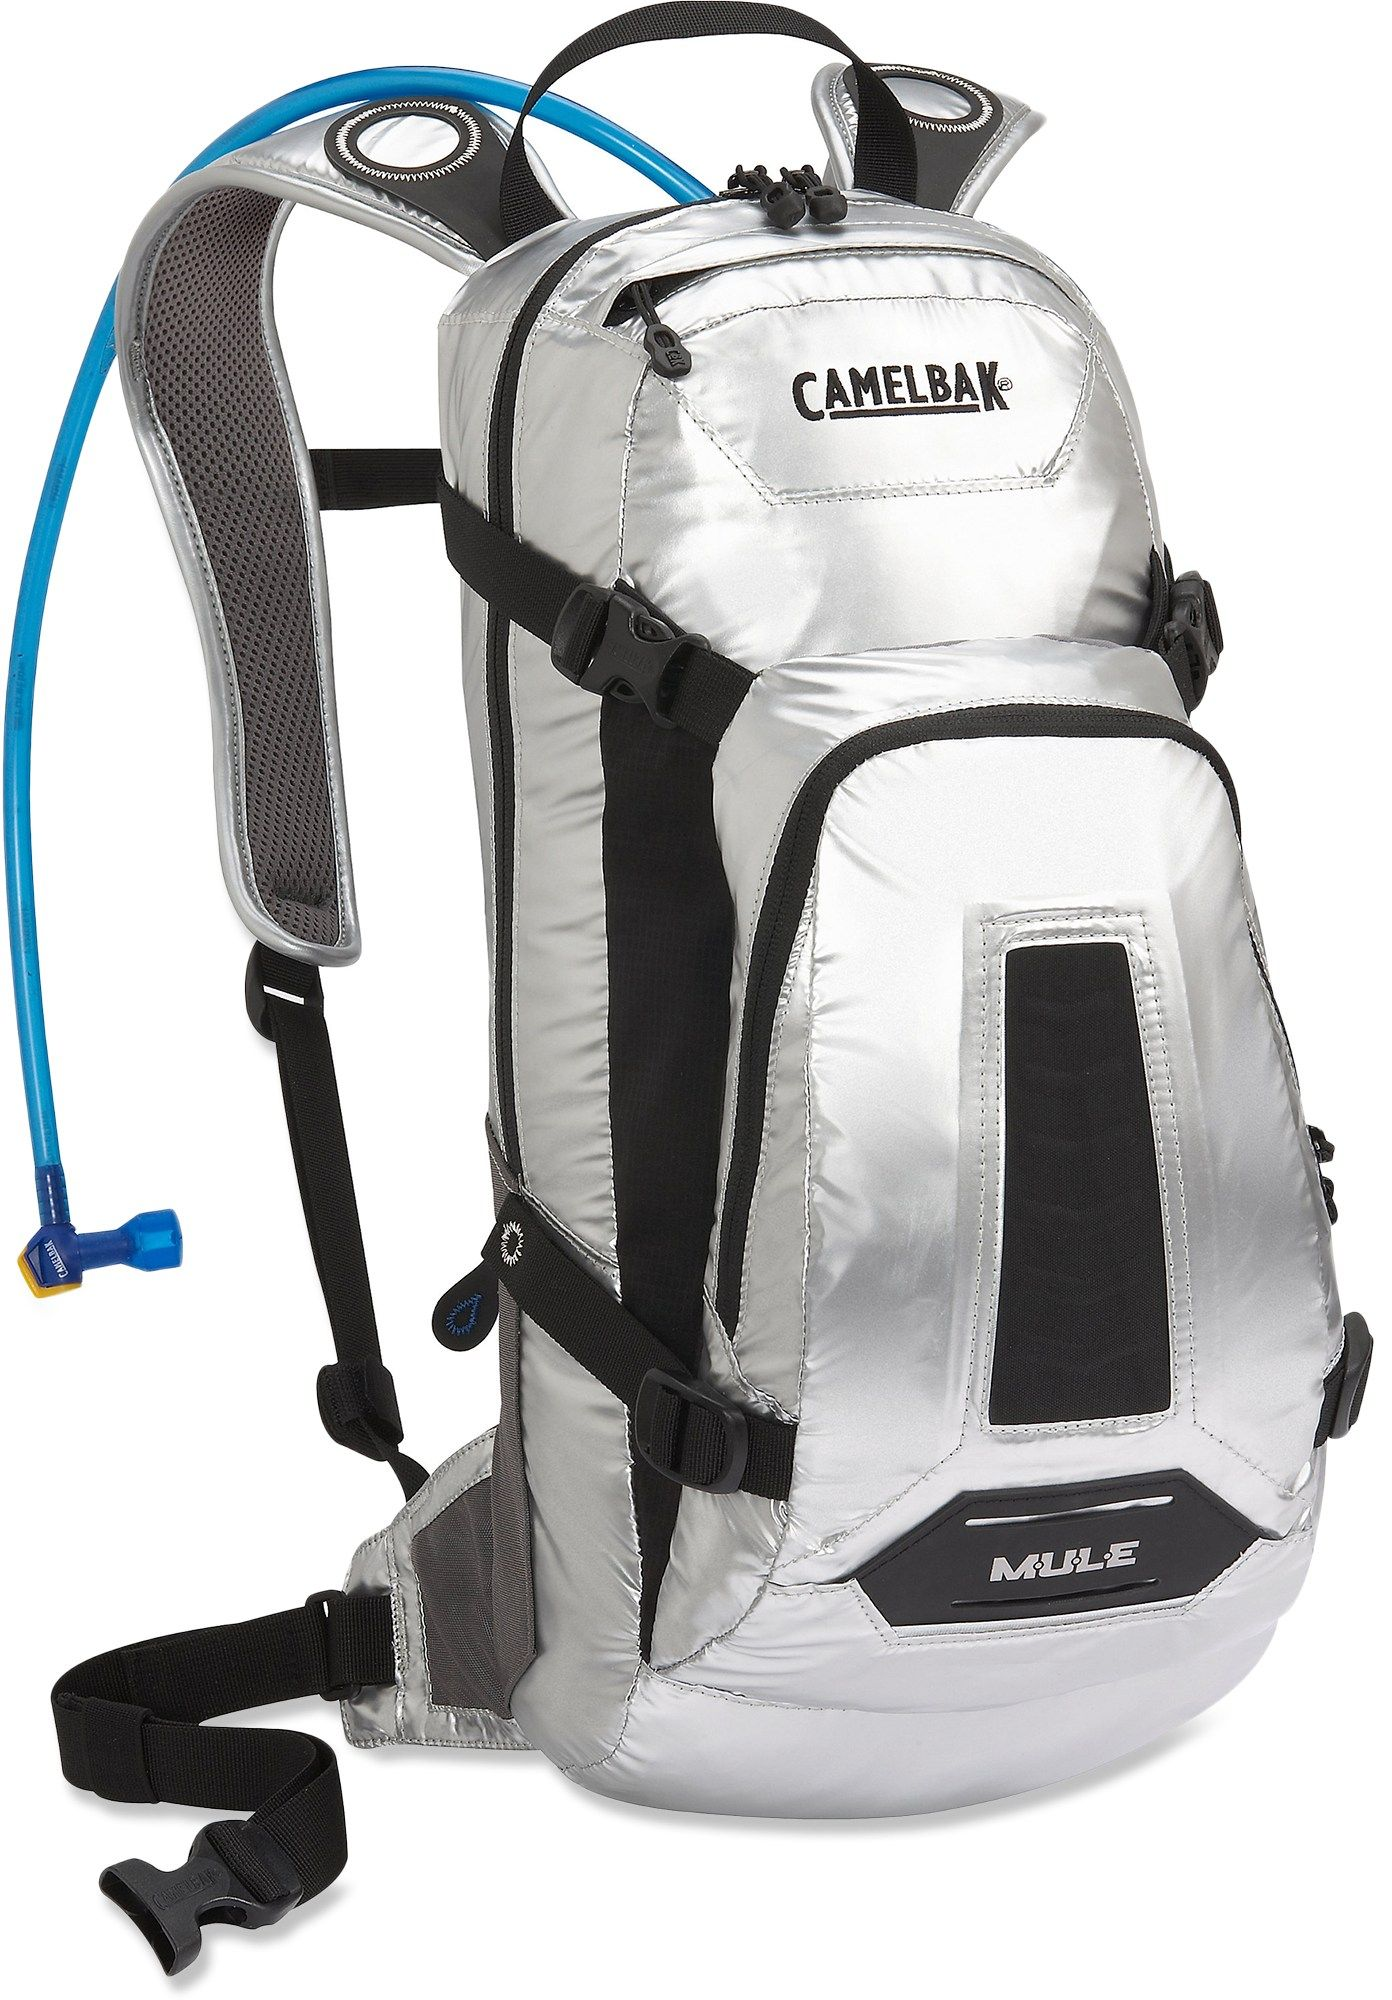 Camelbak M U L E Hydration Pack 100 Fl Oz Rei Co Op Hydration Pack Camelbak Backpack Sport